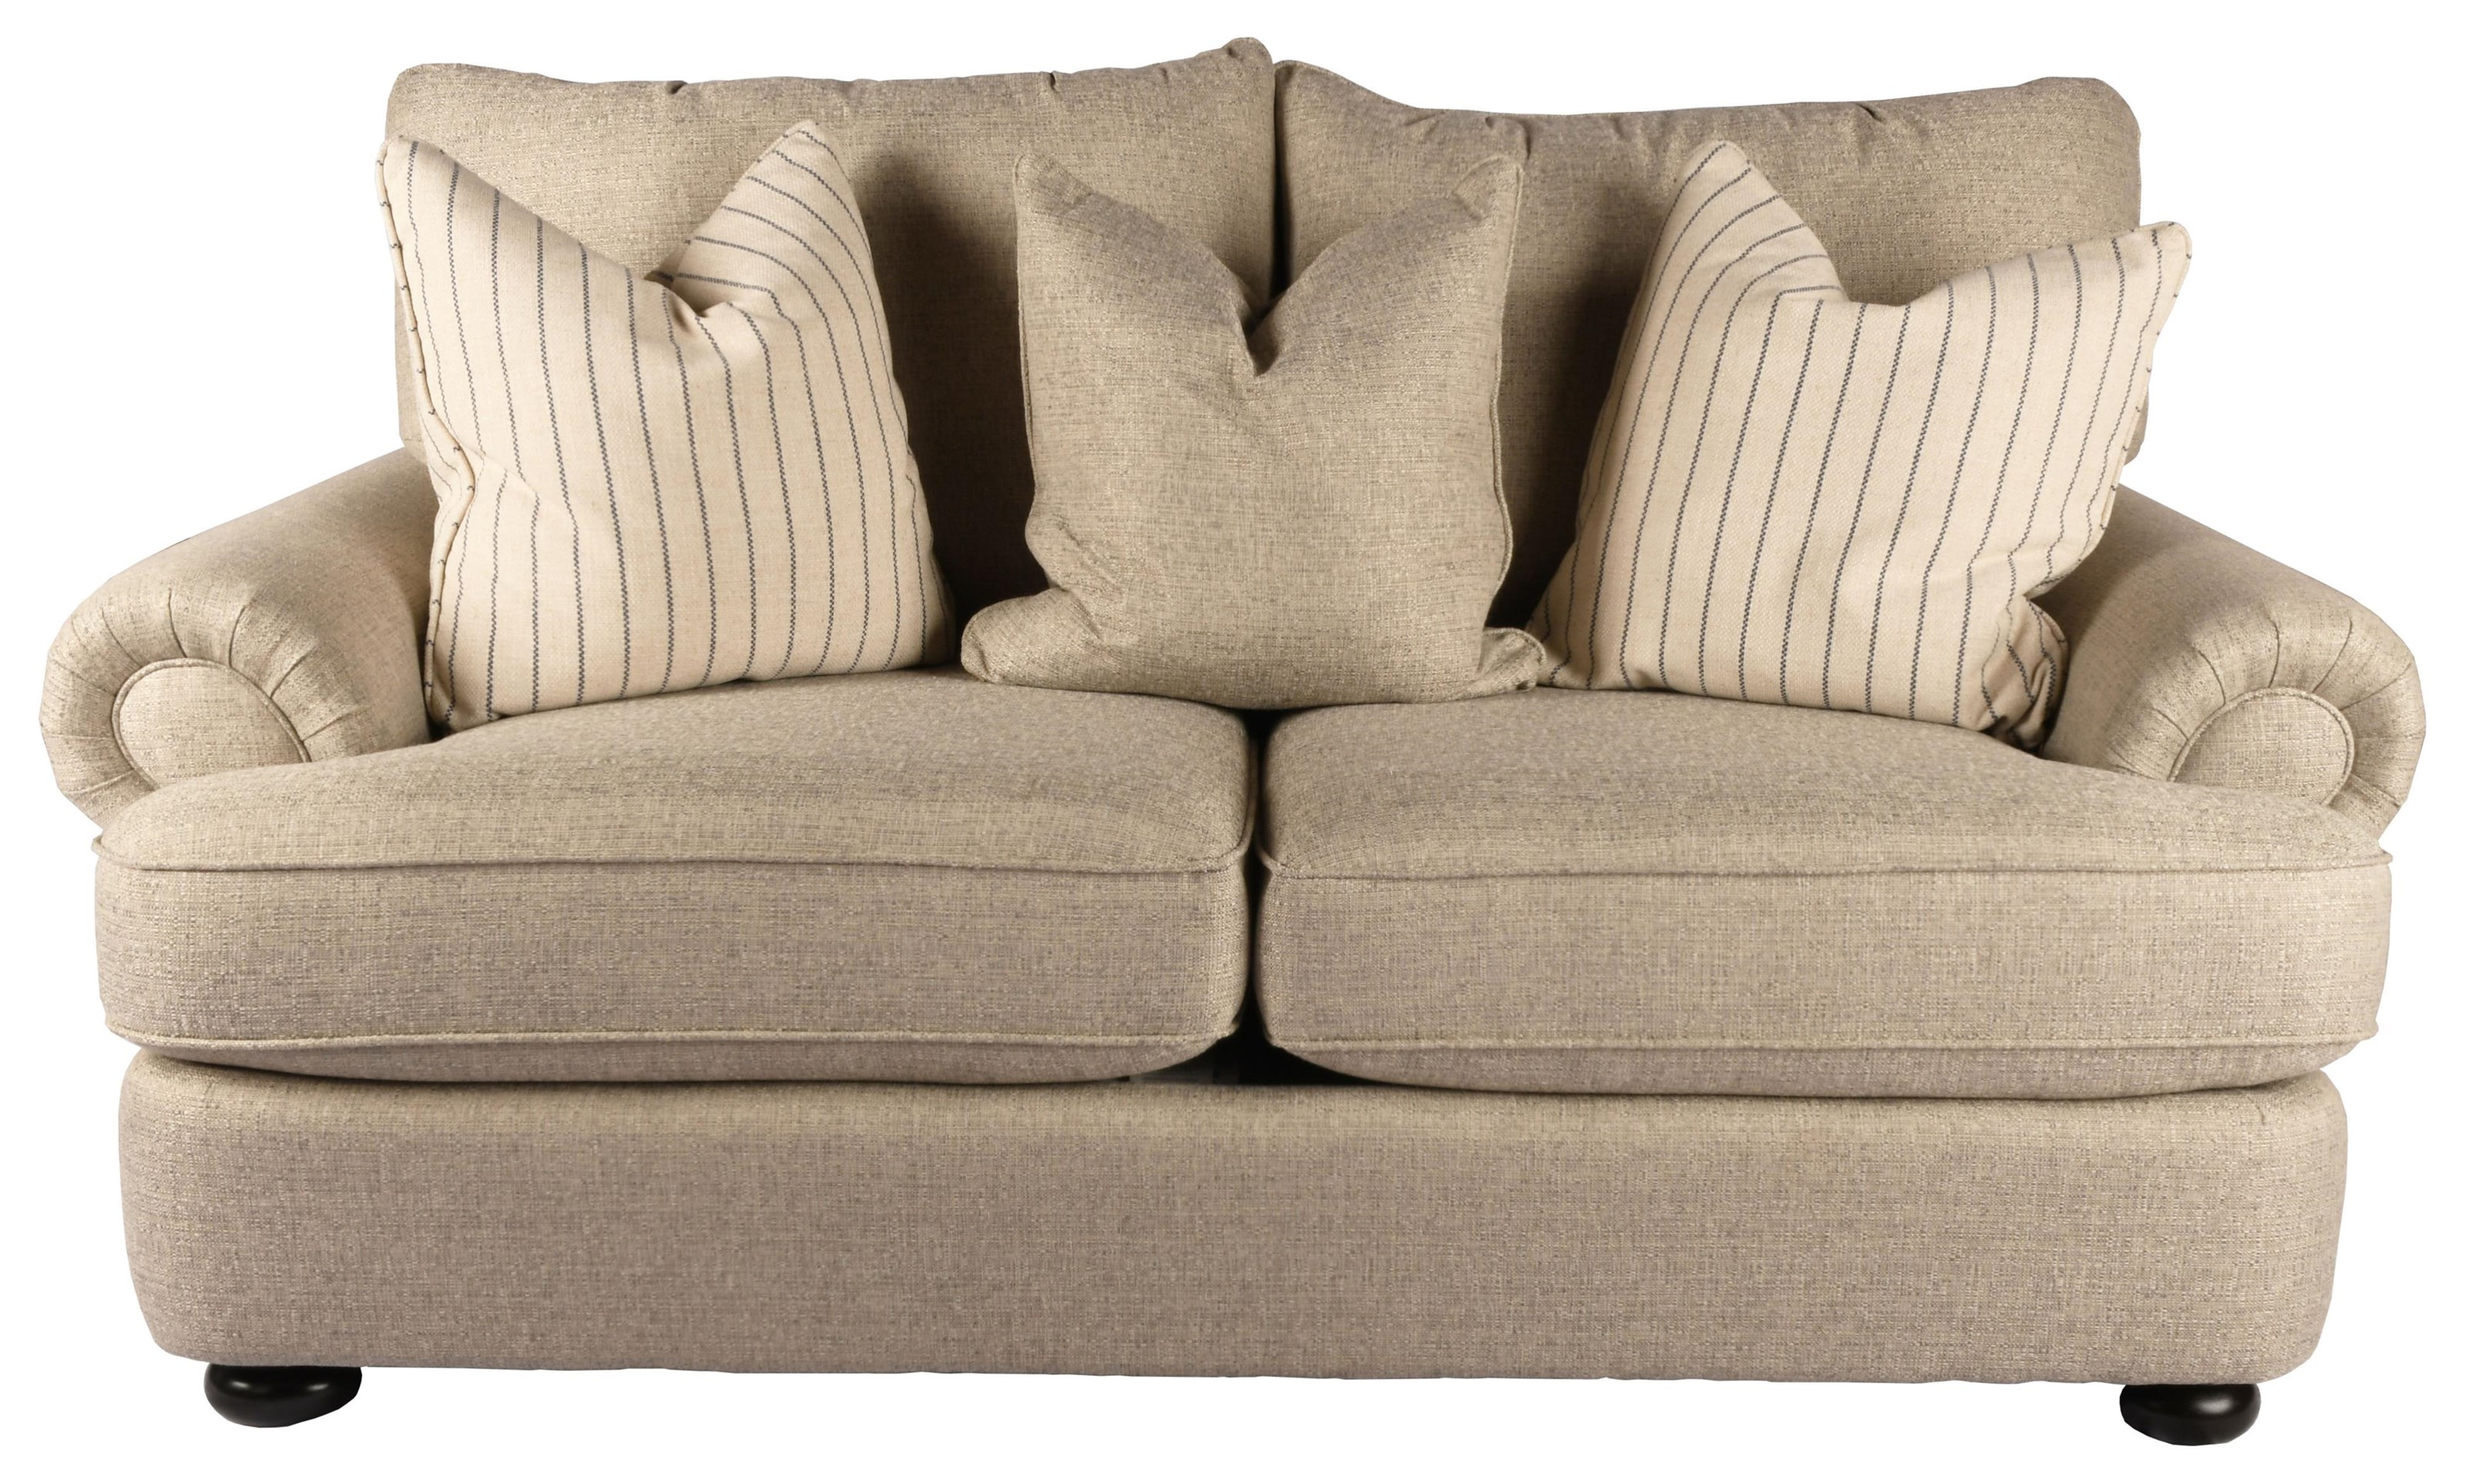 Chandos Love Seat by Taelor Designs at Bennett's Furniture and Mattresses